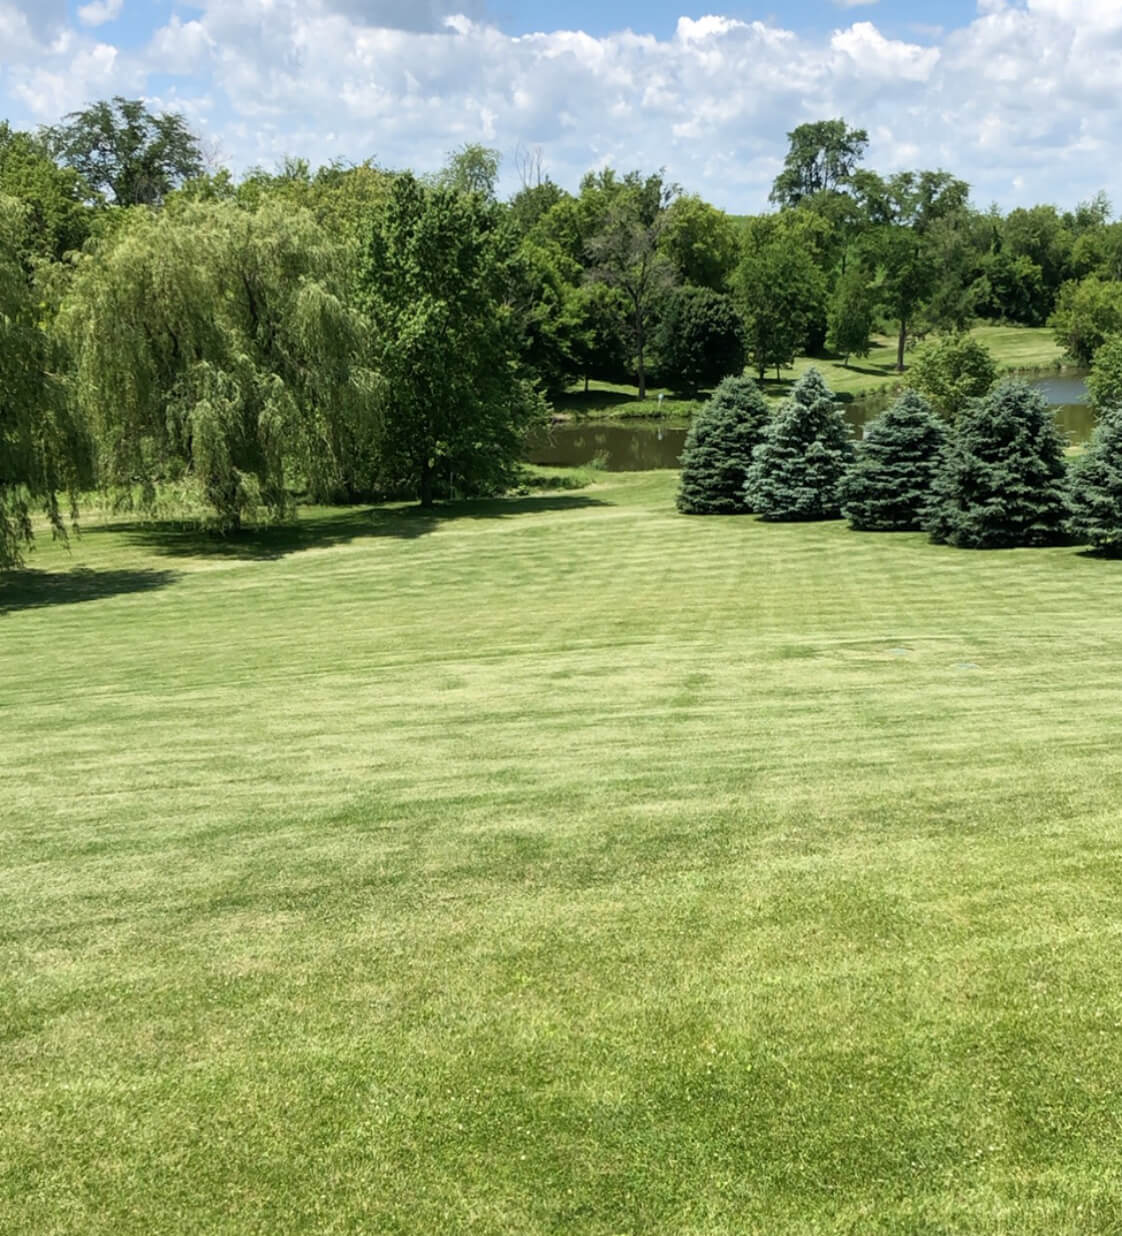 Backyard lawn of Residential Property